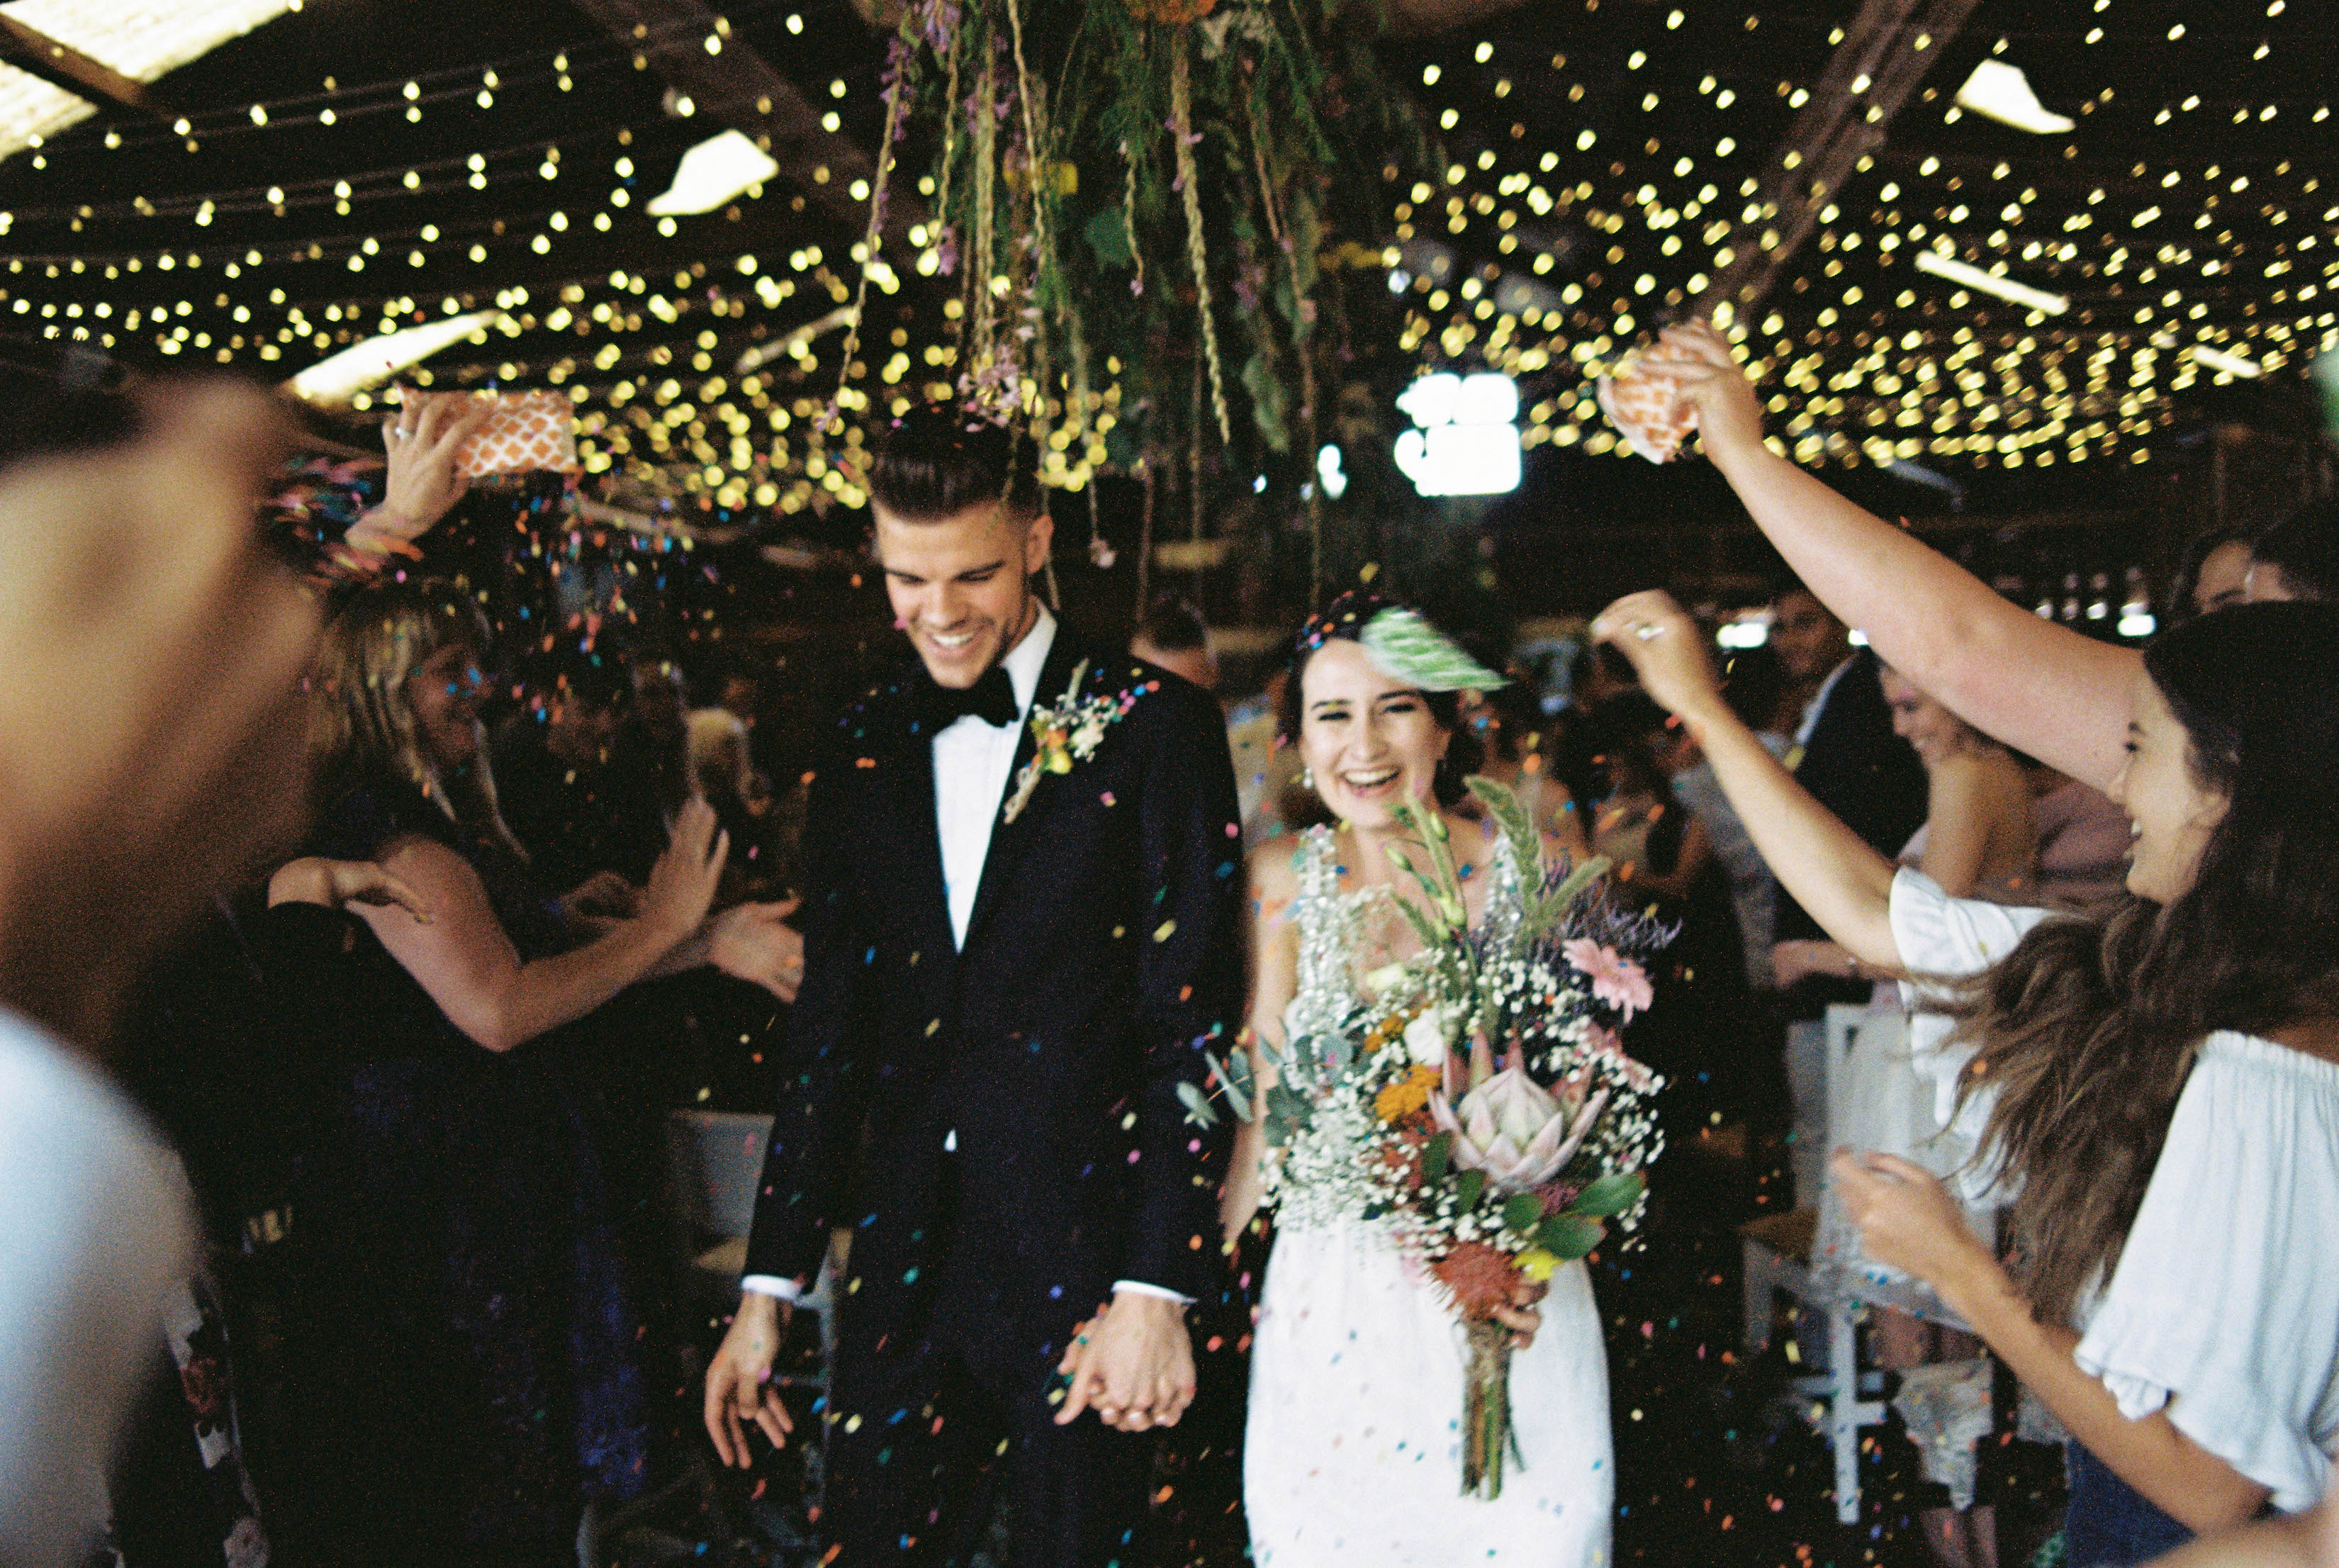 A photo of the confetti exit as the bride and groom walk down the aisle after their South West Wedding Ceremony